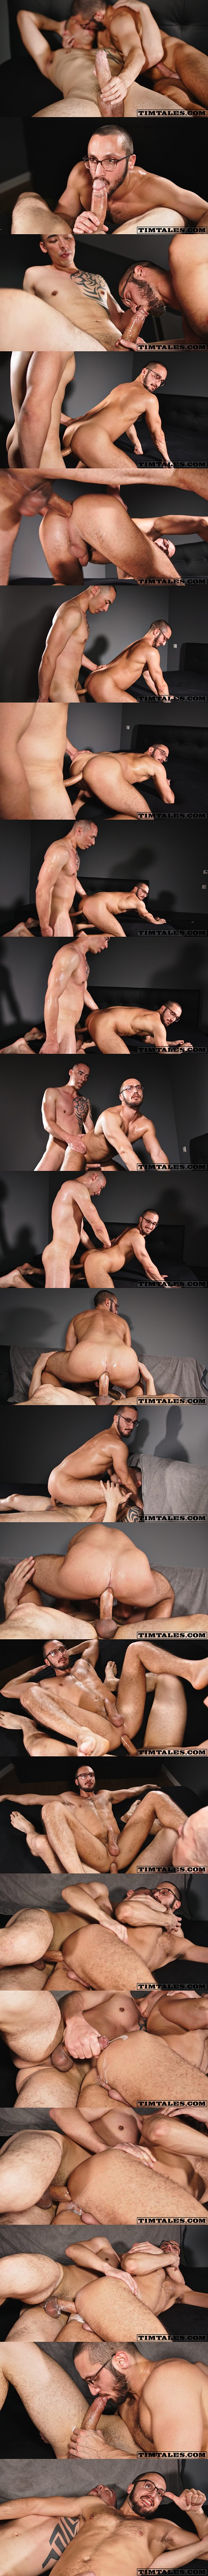 Hot hung newcomer, Chinese-German strongman Tian Tao barebacks power bottom Saverio balls deep in several positions before he breeds Saverio with a thick load at Timtales 01